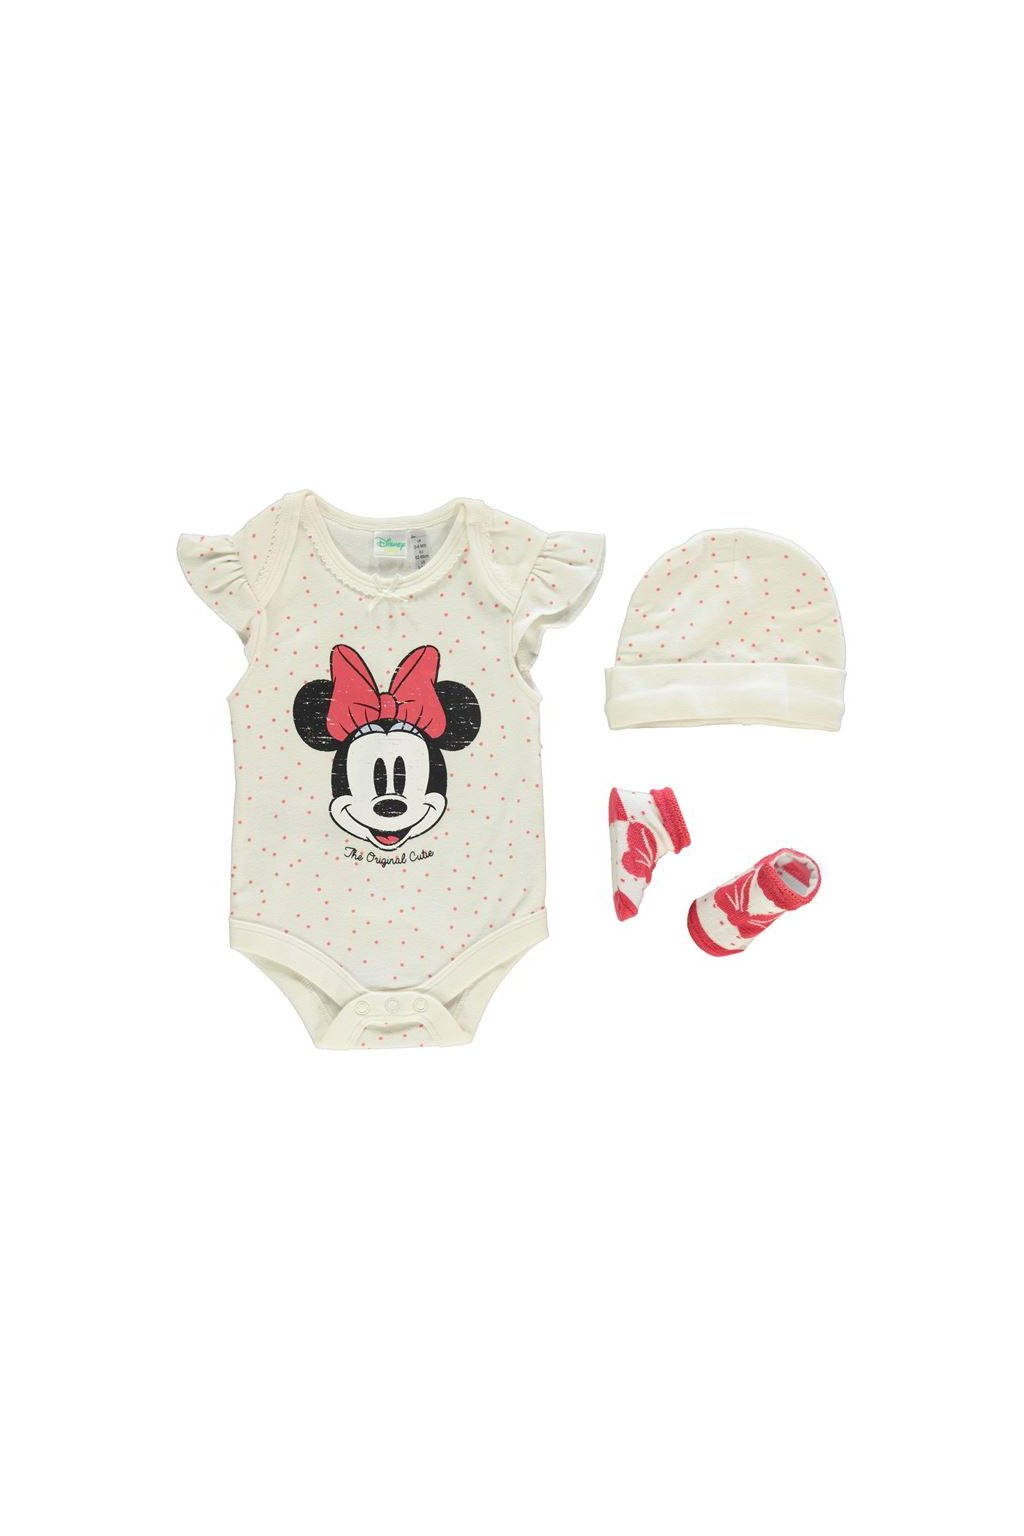 DISNEY 3 pack Romper Suit baby set